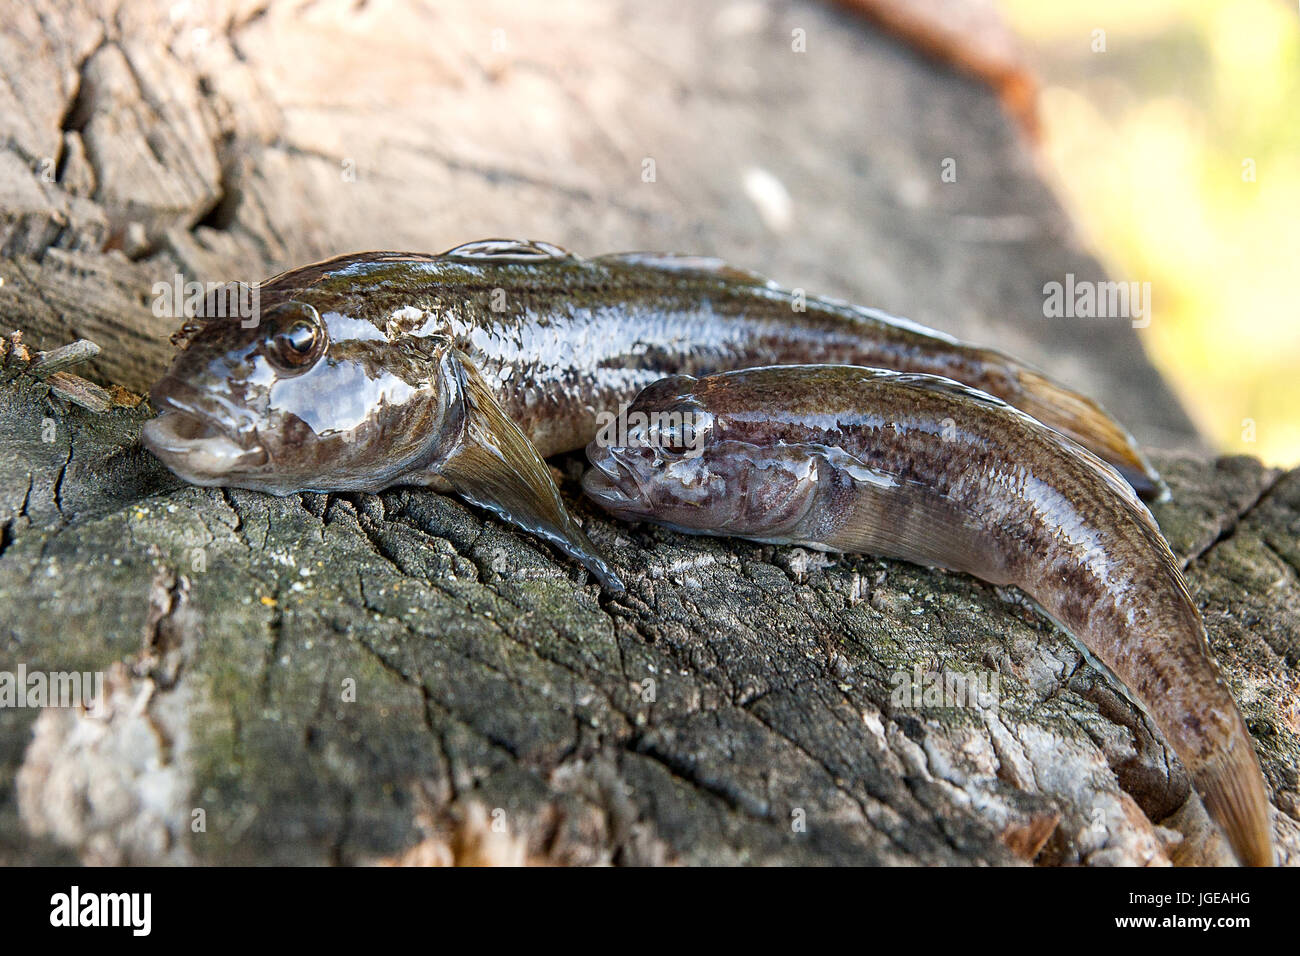 freshwater bullhead fish or round goby fish known as